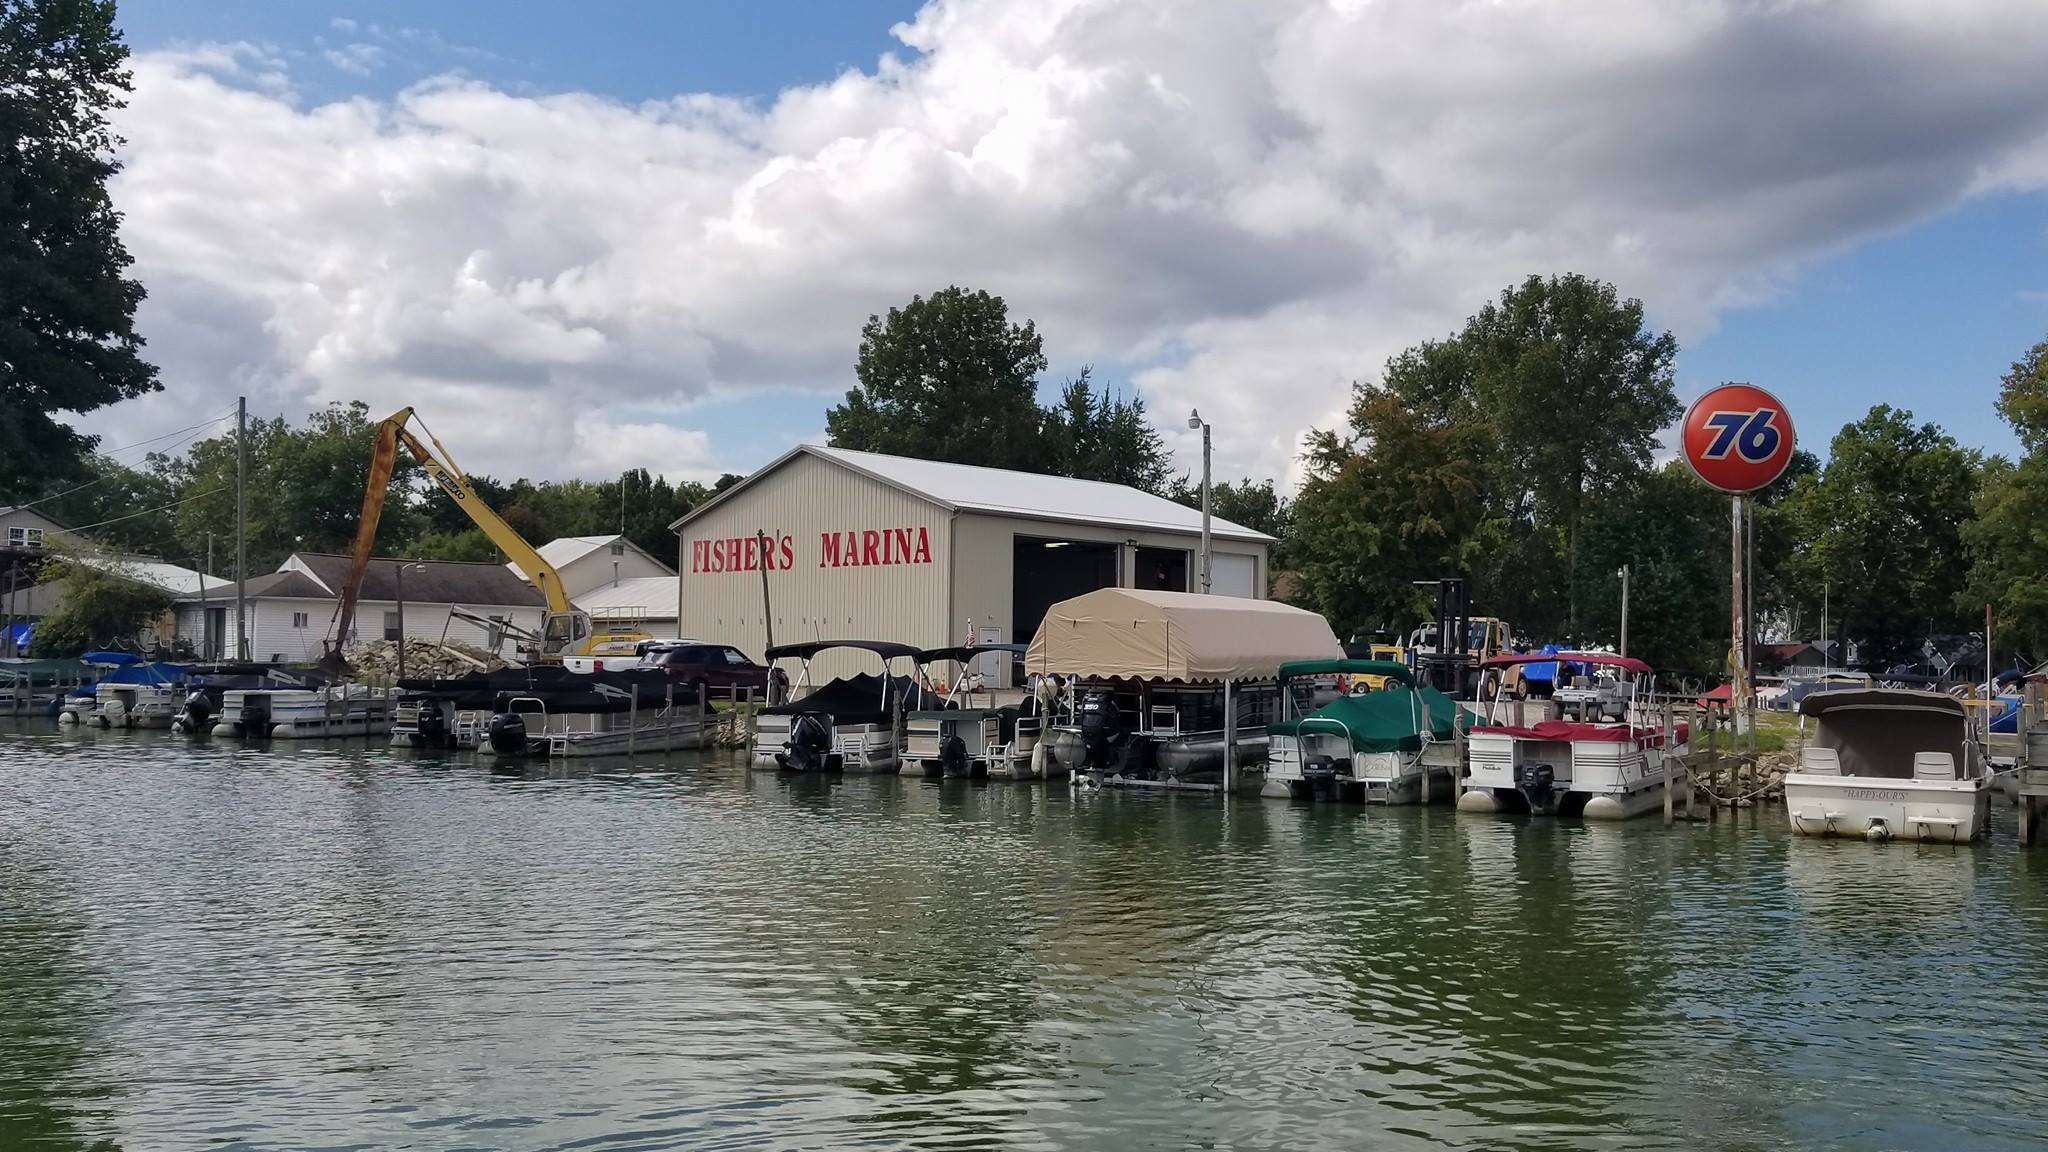 Life on the water is what makes Buckeye Lake so special, and Fisher's Marina has been serving boaters' needs since 1957.